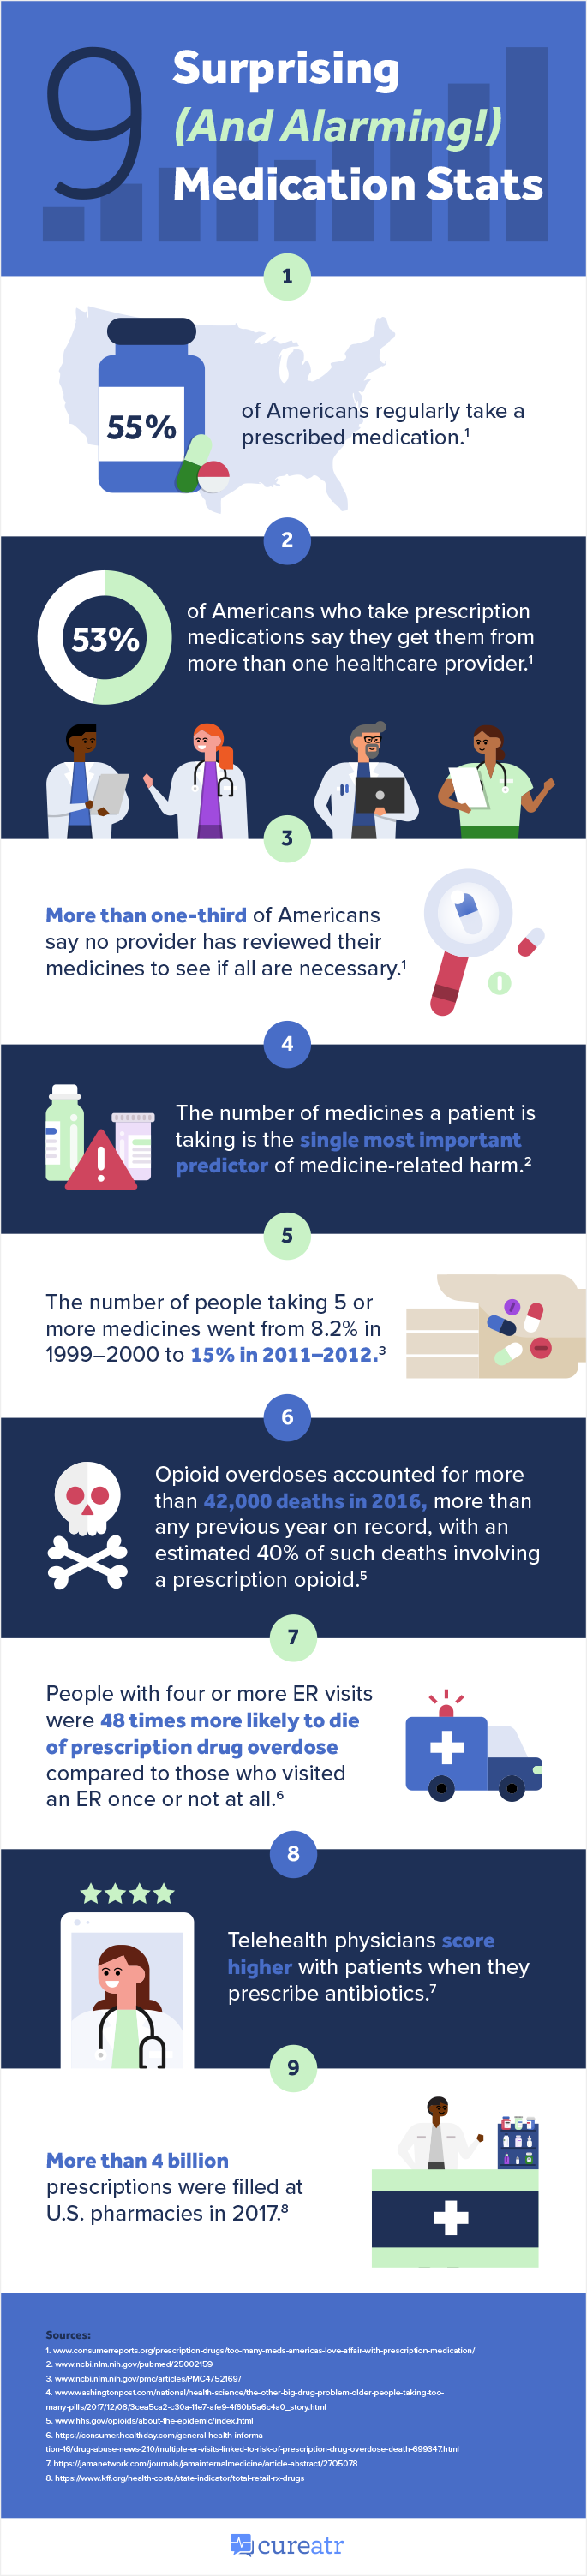 9 Surprising Medication Stats